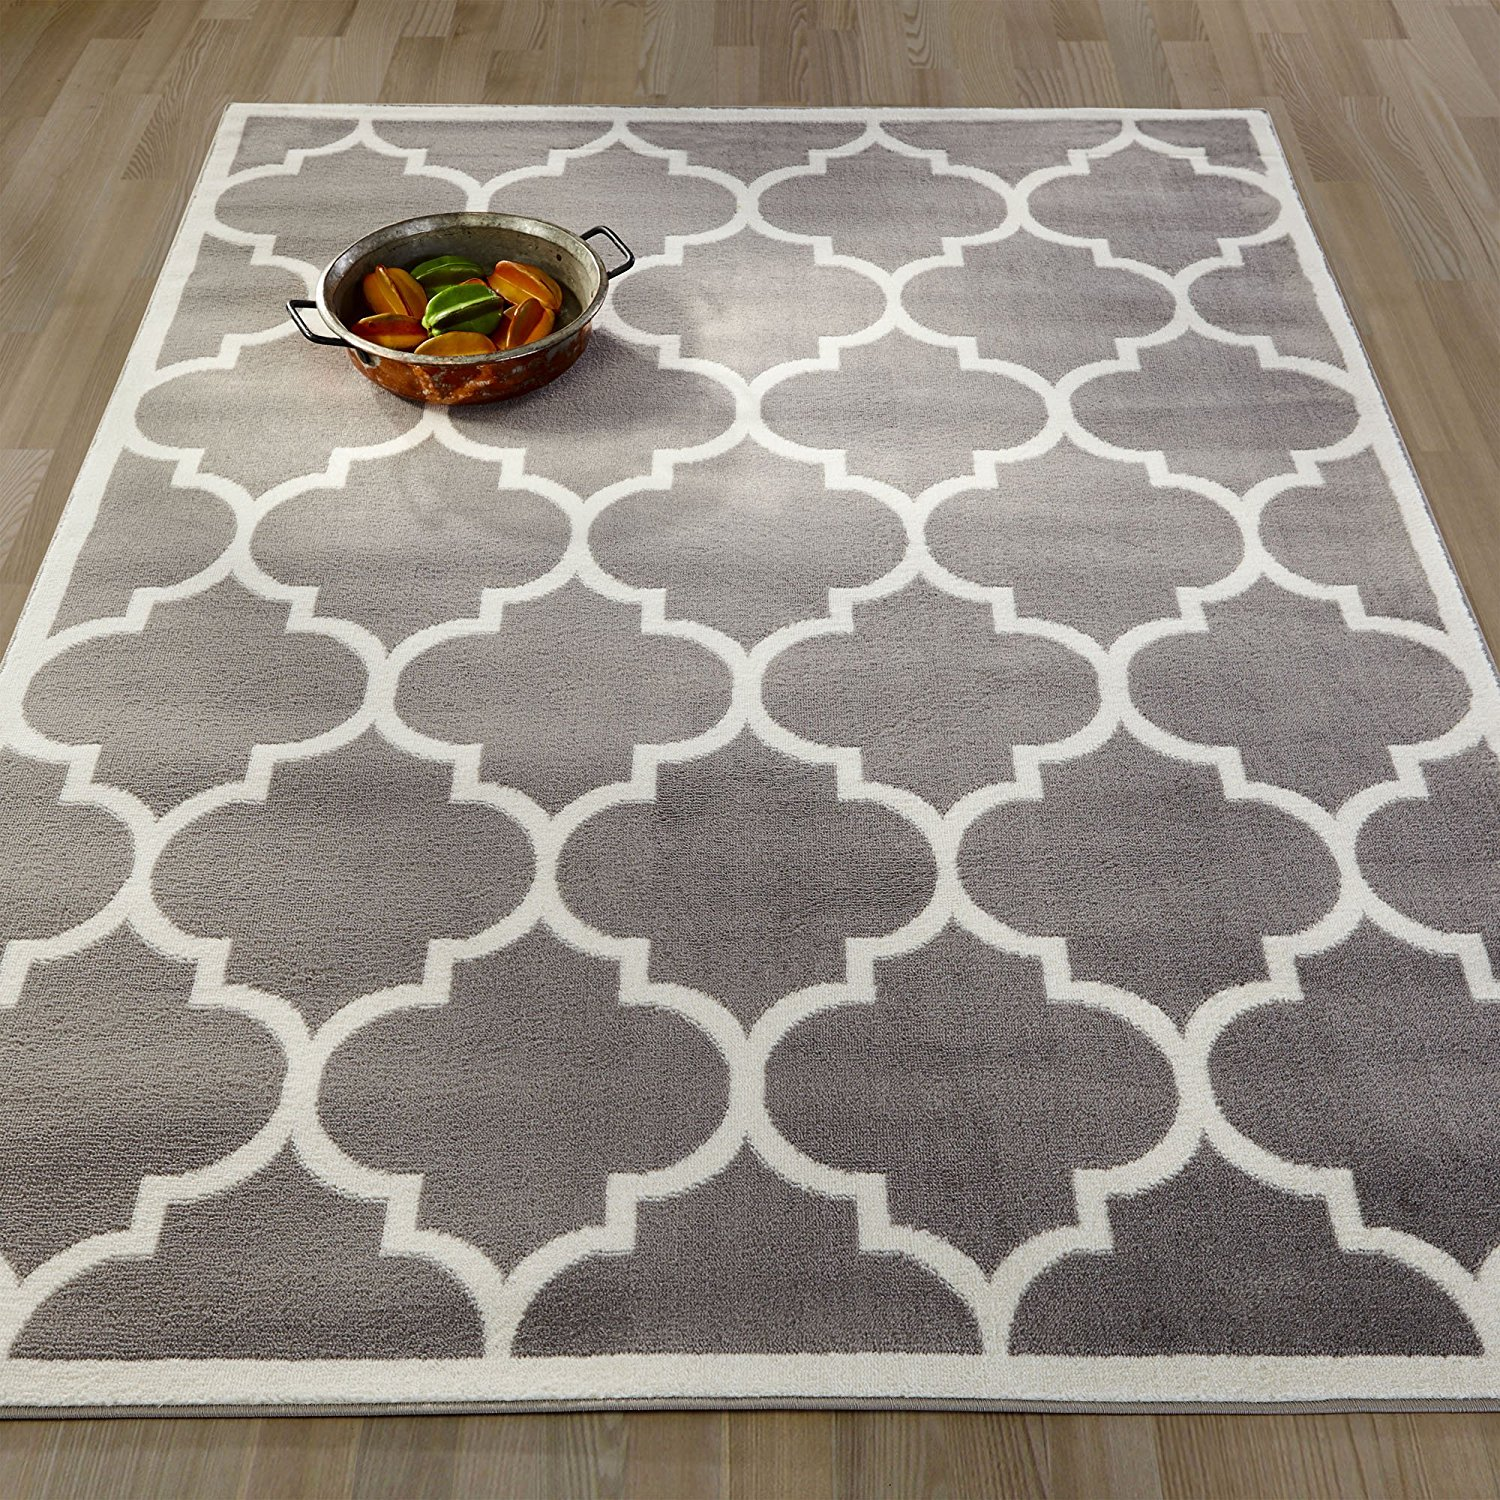 "Ottomanson Paterson Collection Grey Contemporary Moroccan Trellis Design Lattice Area Rug, 5'3""x7'0"""